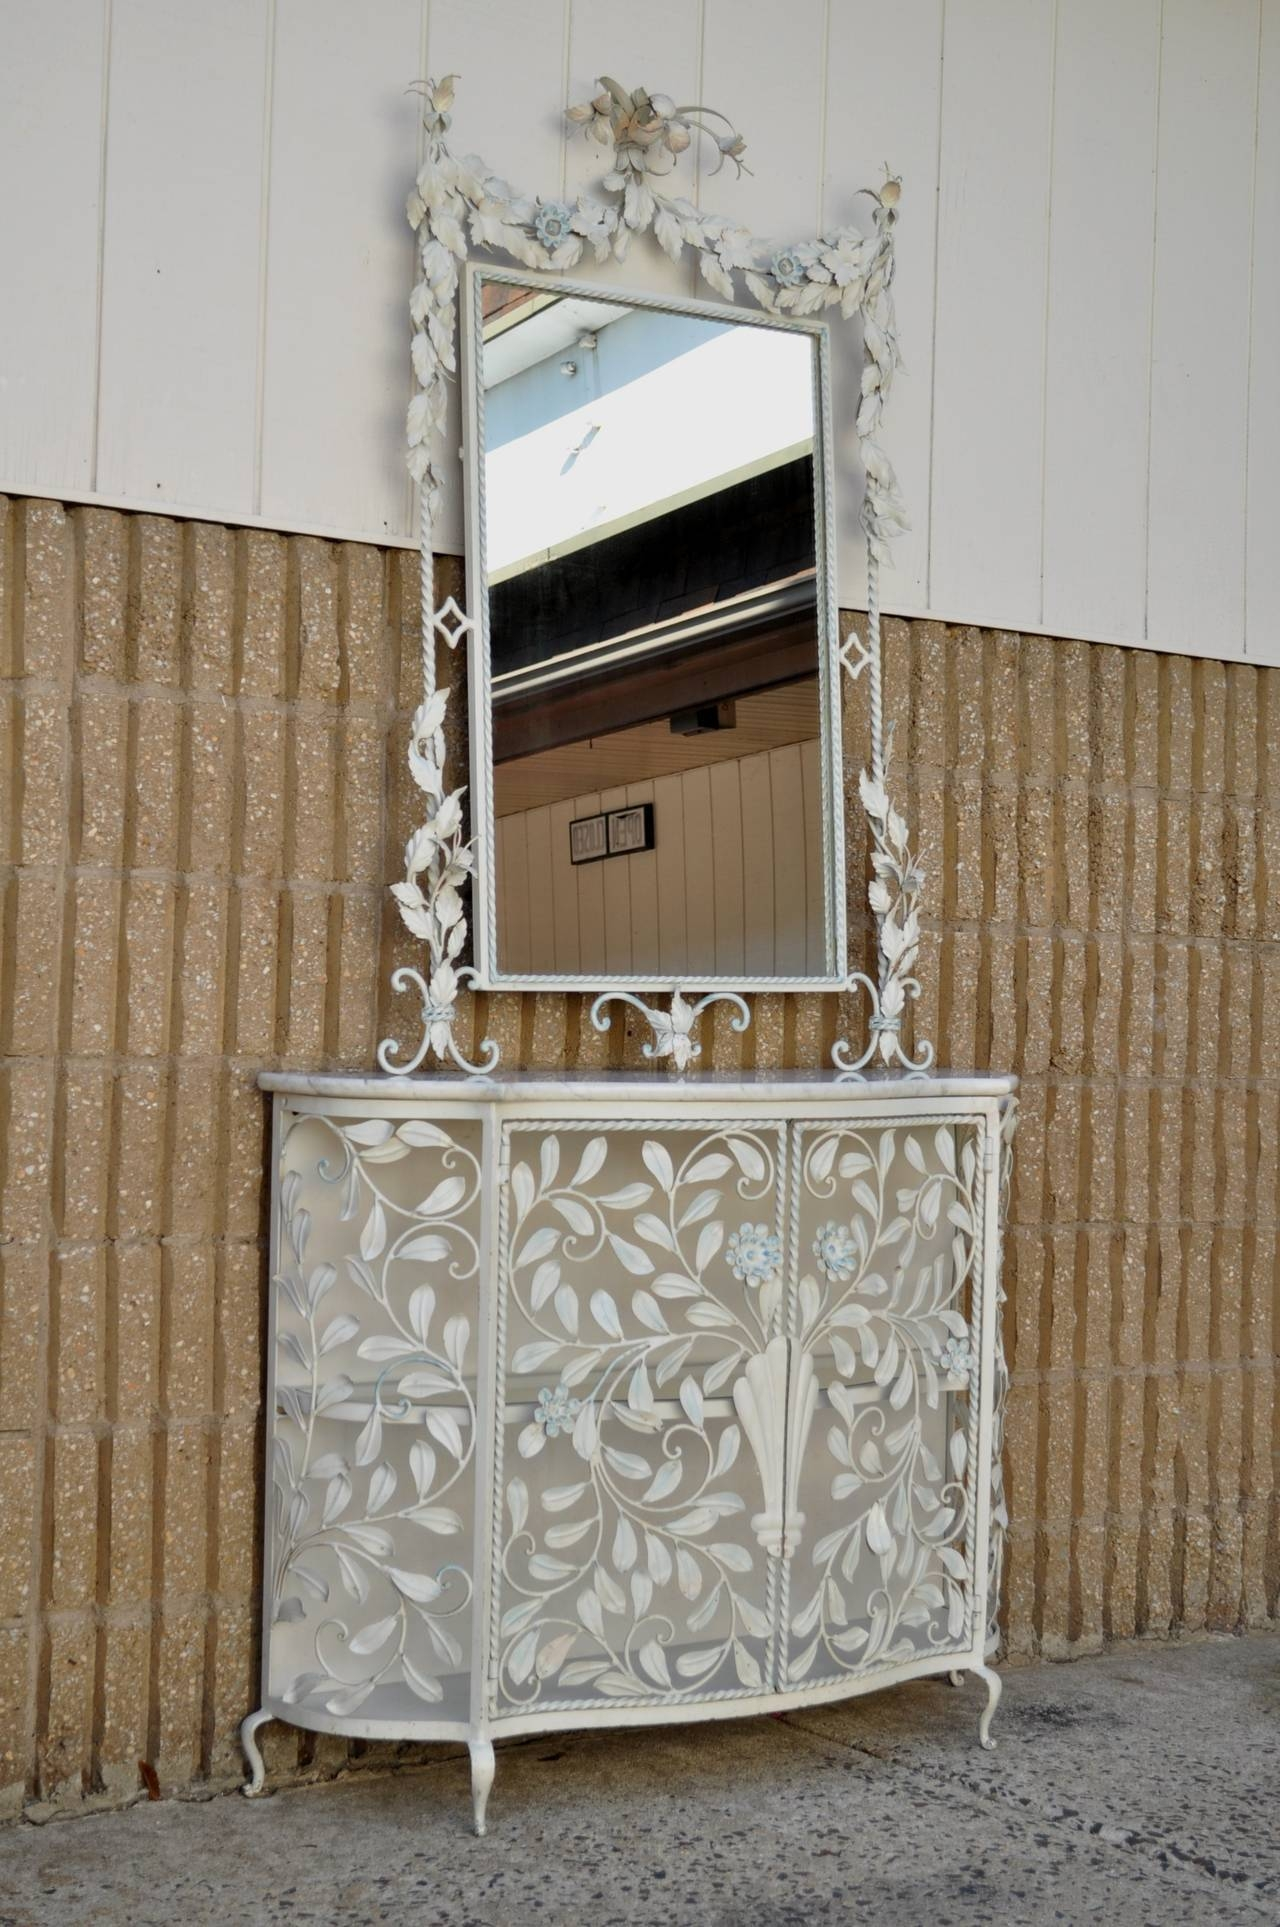 Ornate French Floral Wrought Iron Mirror And Marble Top Console within Wrought Iron Full Length Mirrors (Image 18 of 25)